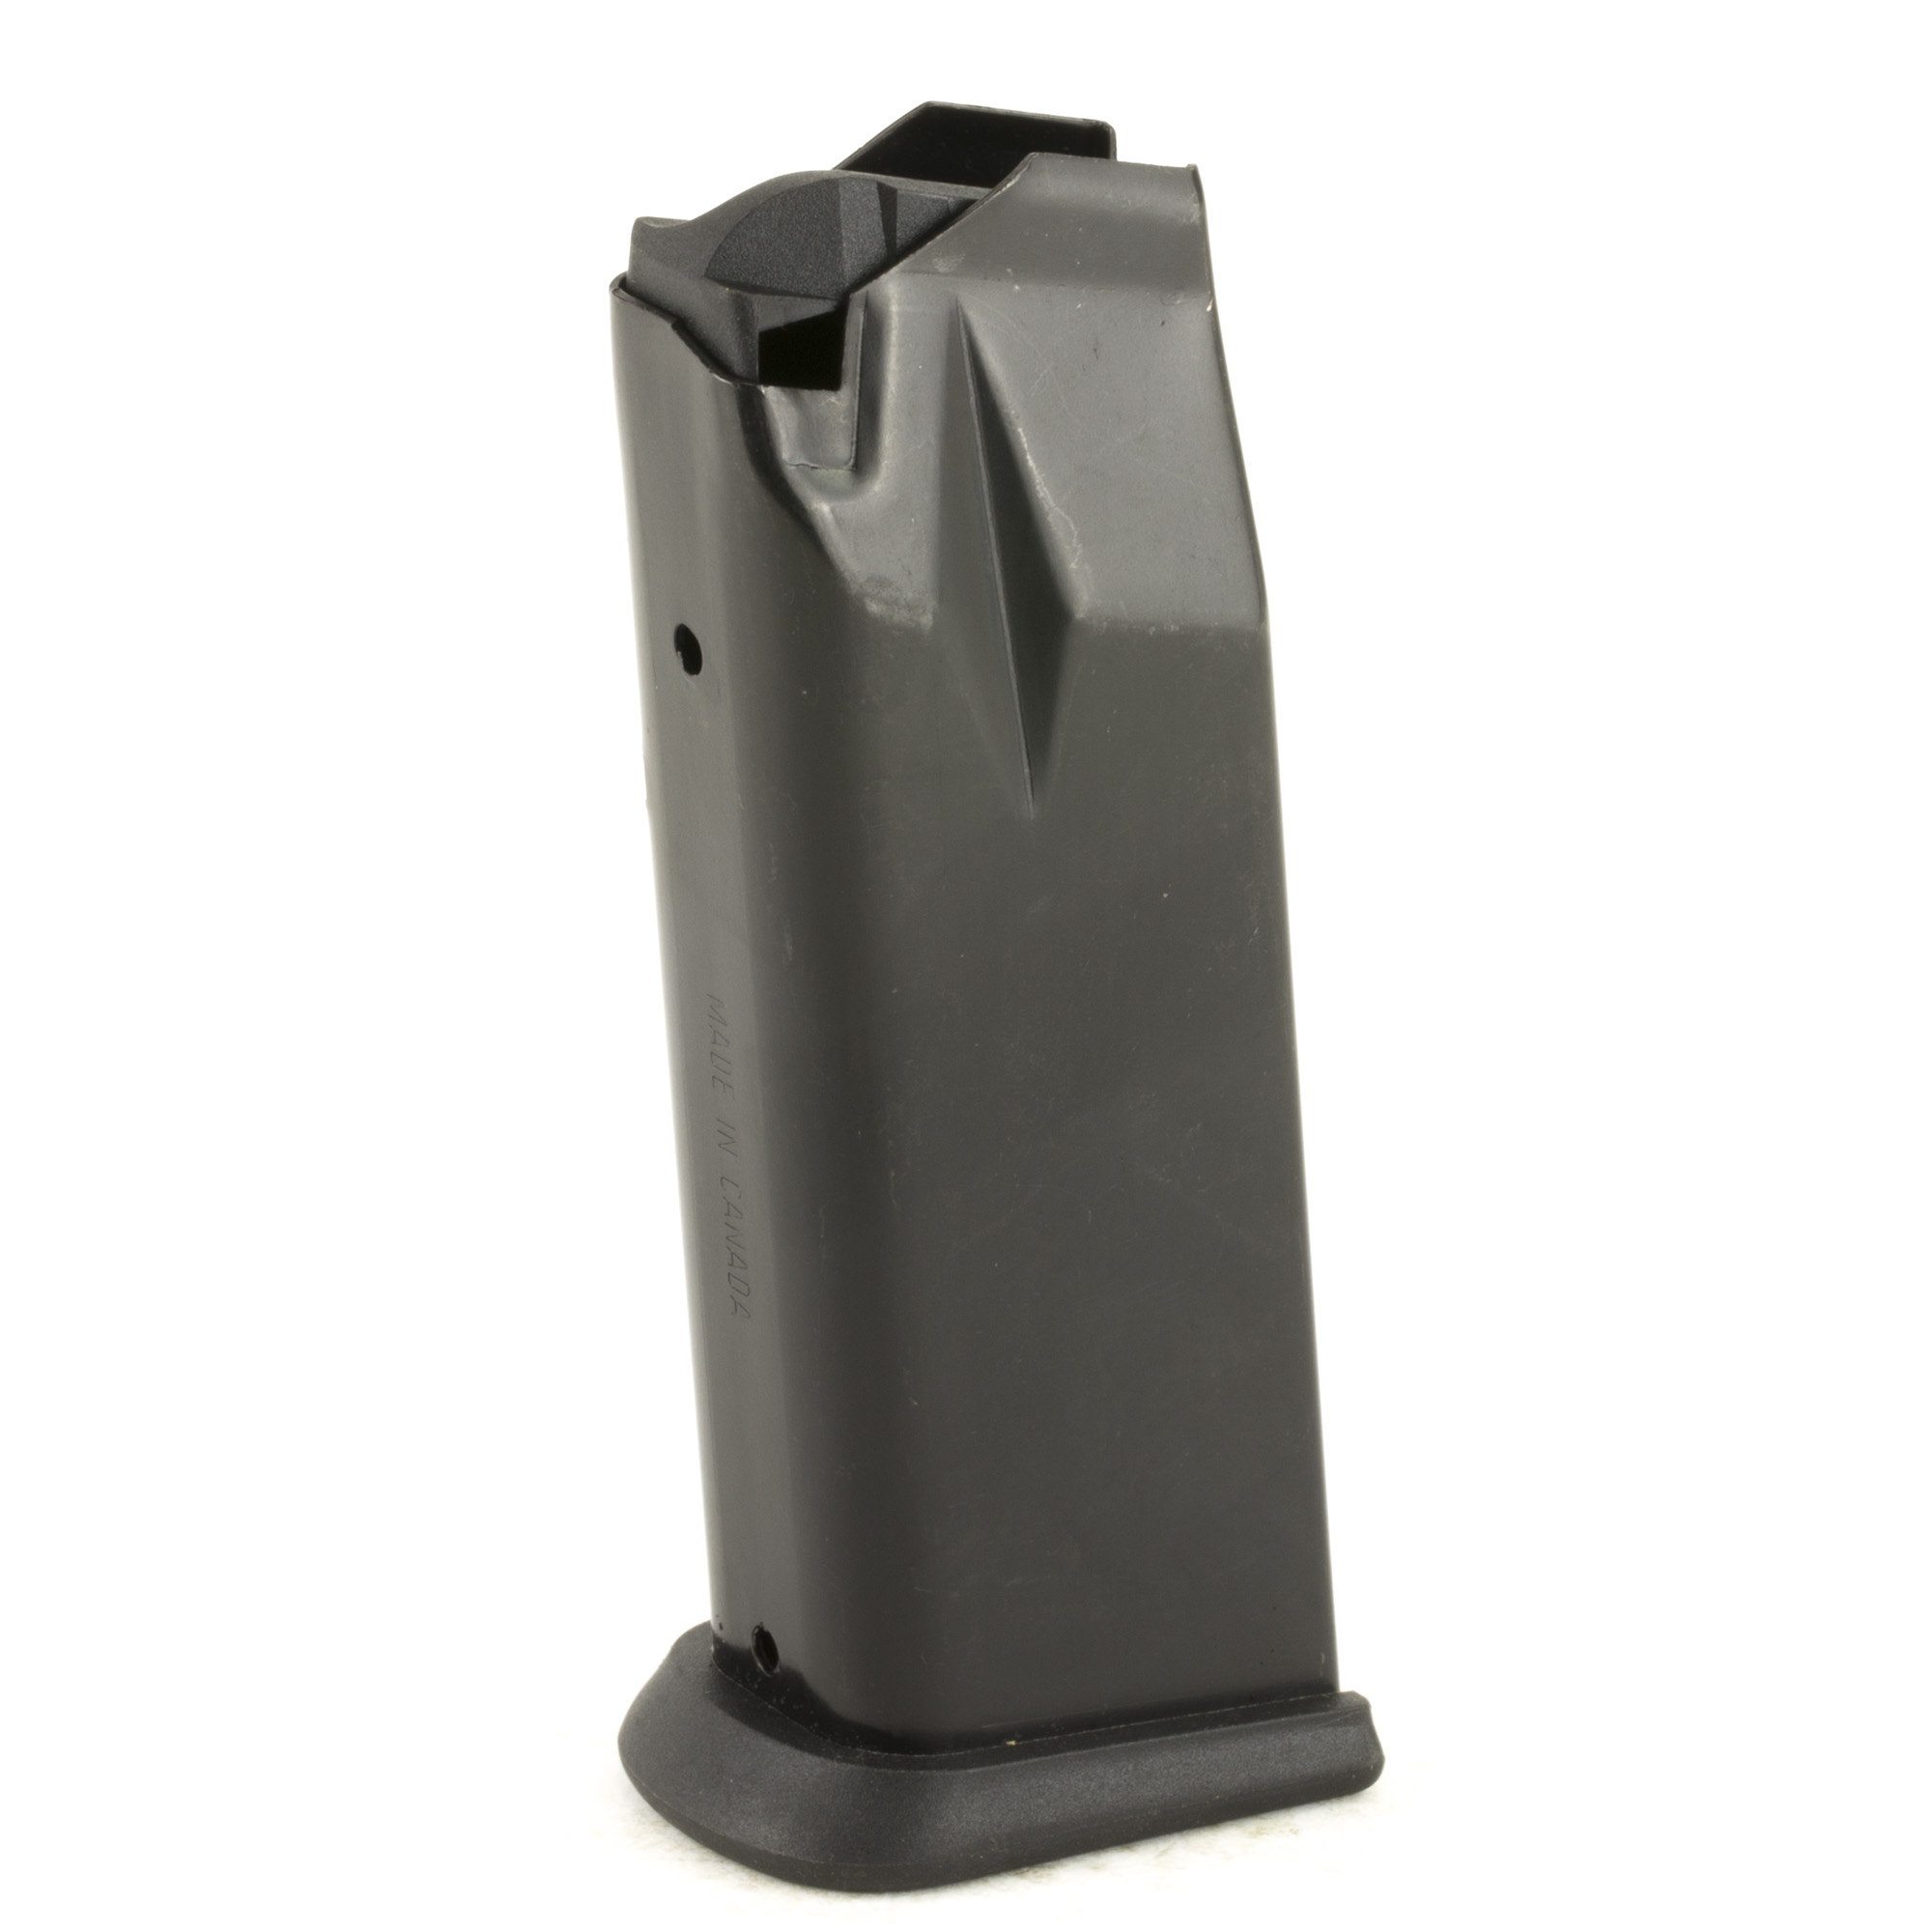 Target Sports magazines feature high quality components and precise manufacturing that will ensure long-lasting performance and reliability.